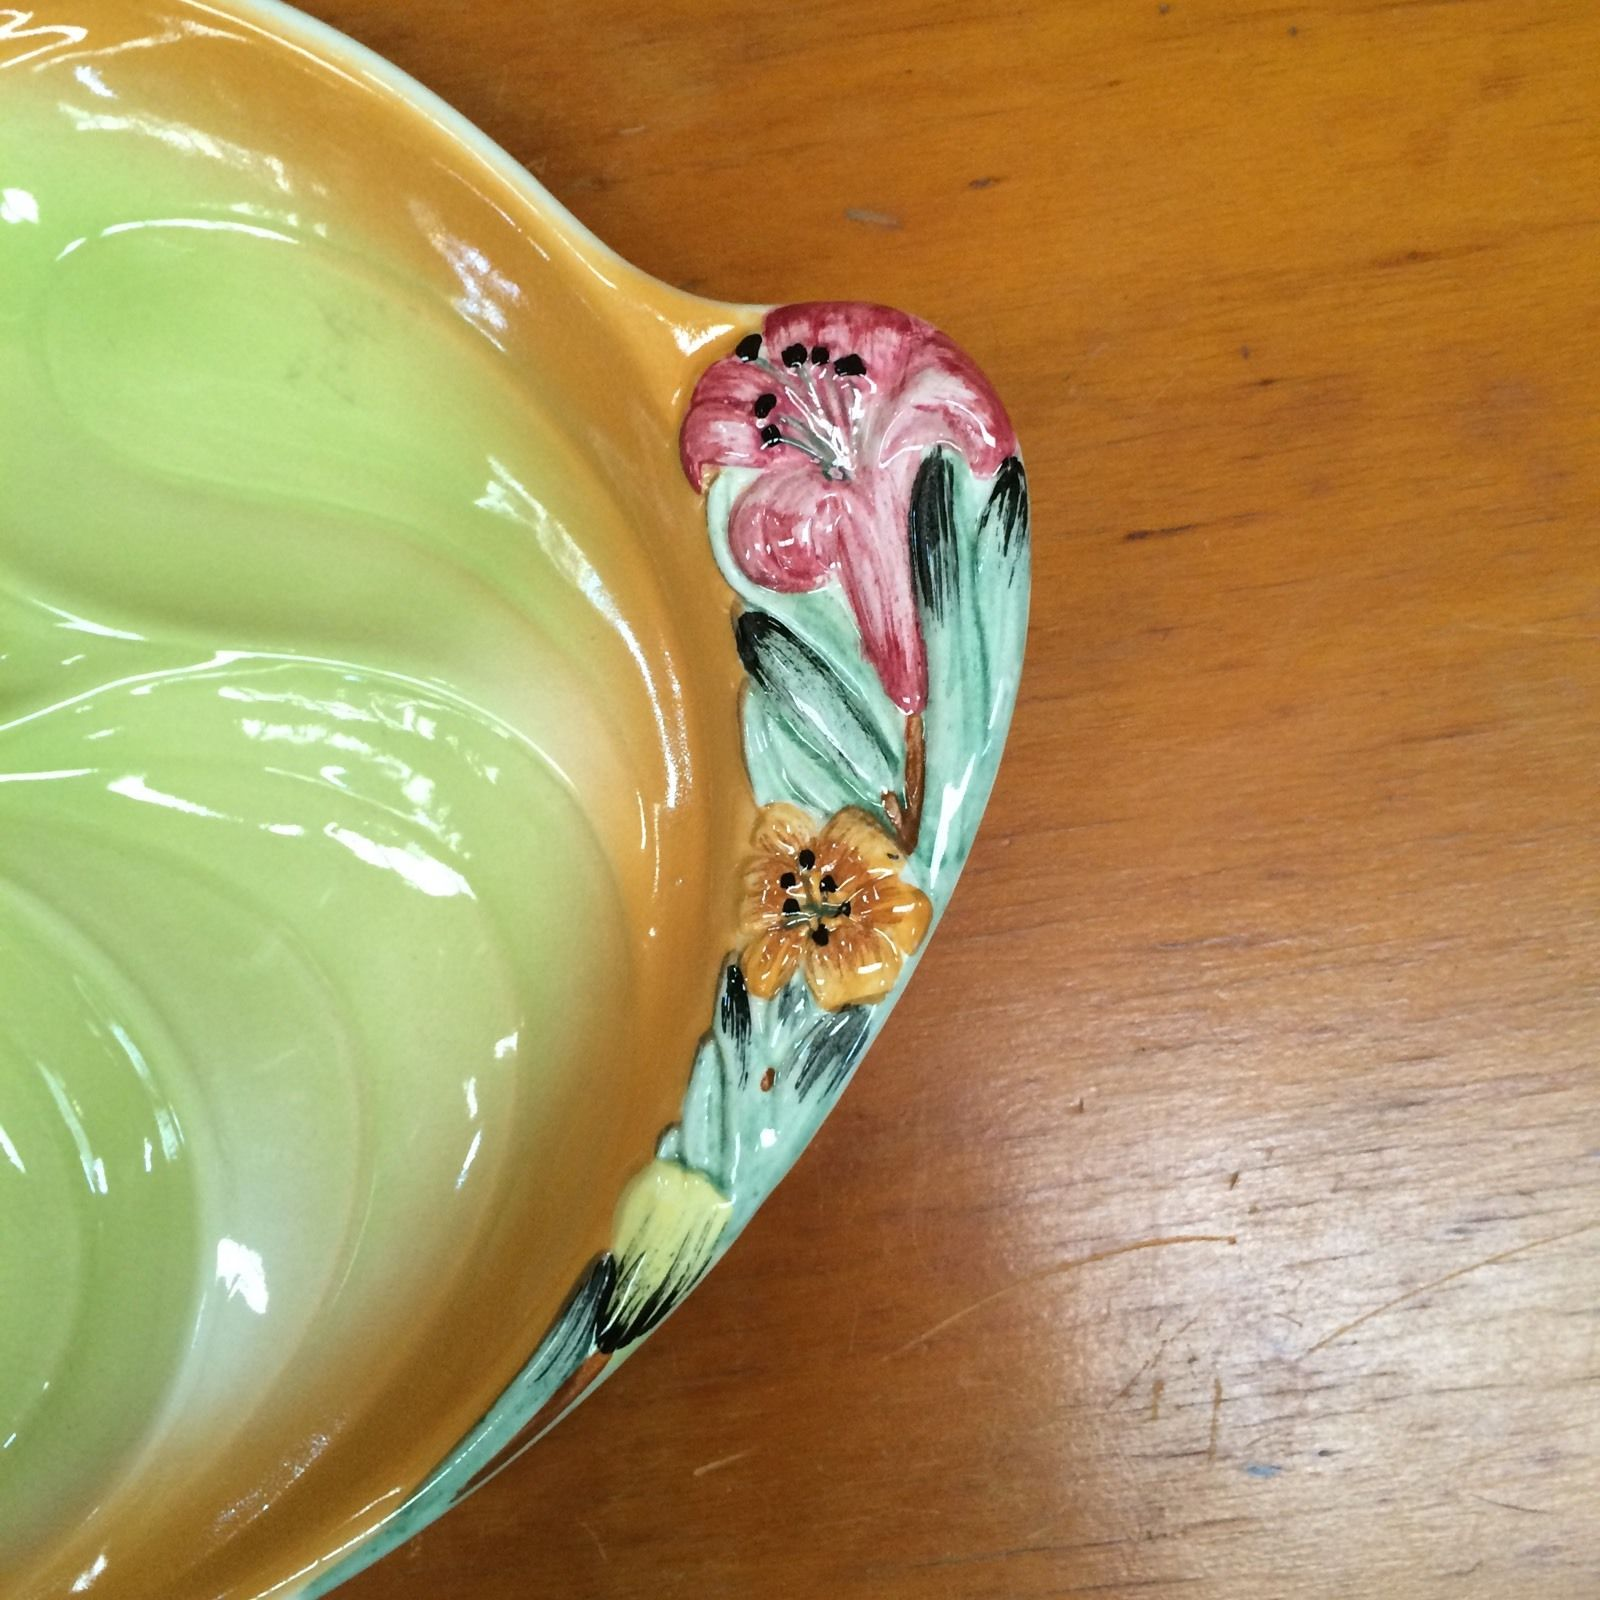 Vintage Staffordshire Pottery Hand Painted Shorter & Sons Platter | Halsey Road Recyclers